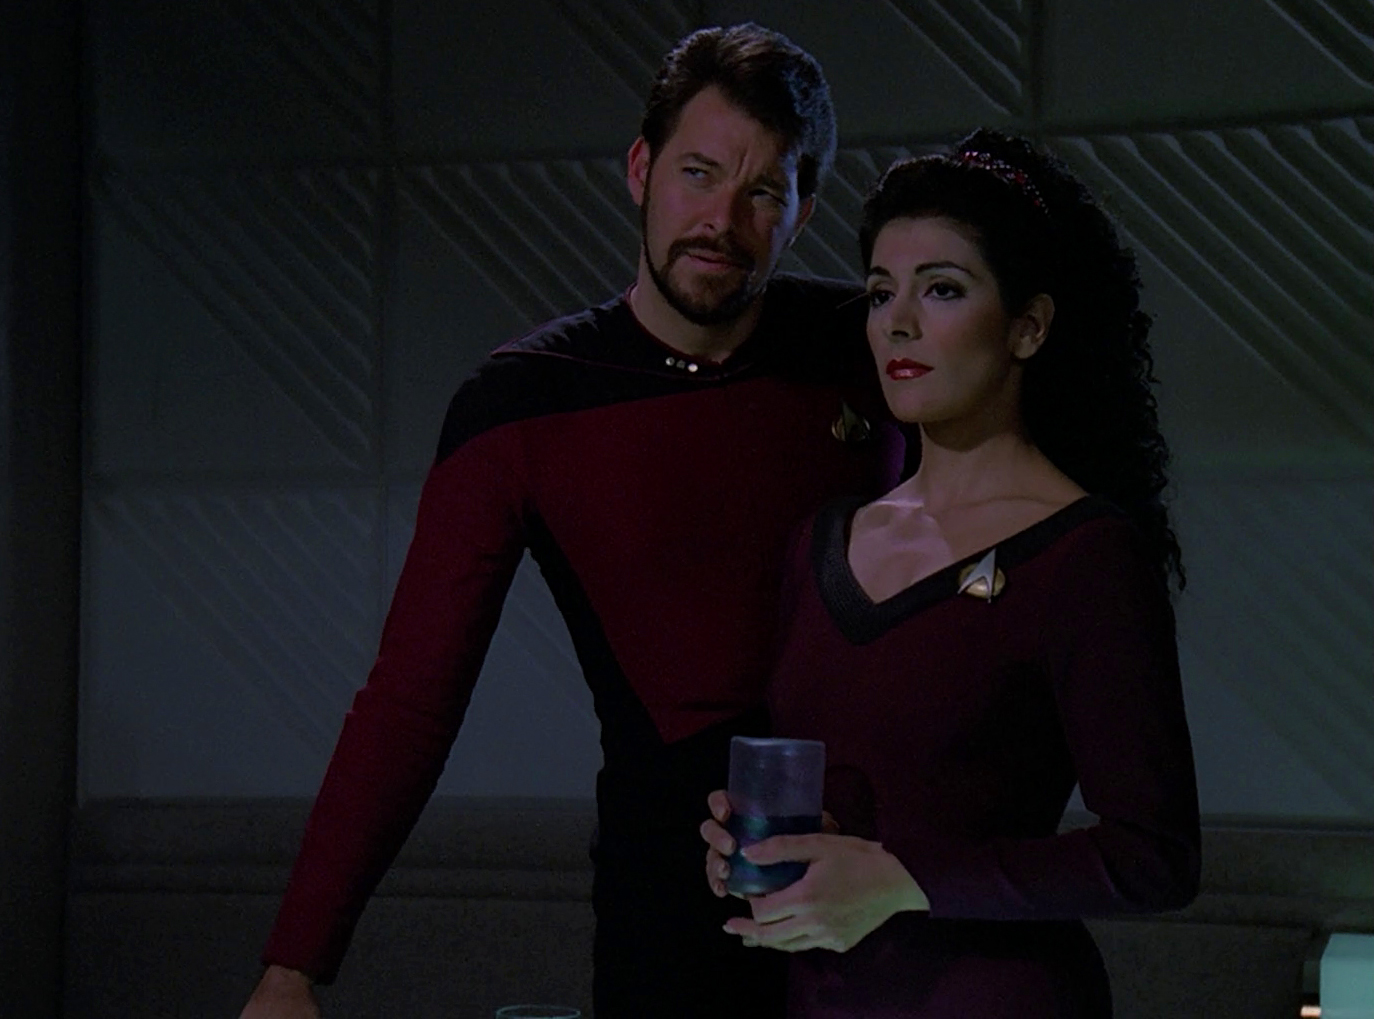 Riker and troi kissing http www pic2fly com riker troi html